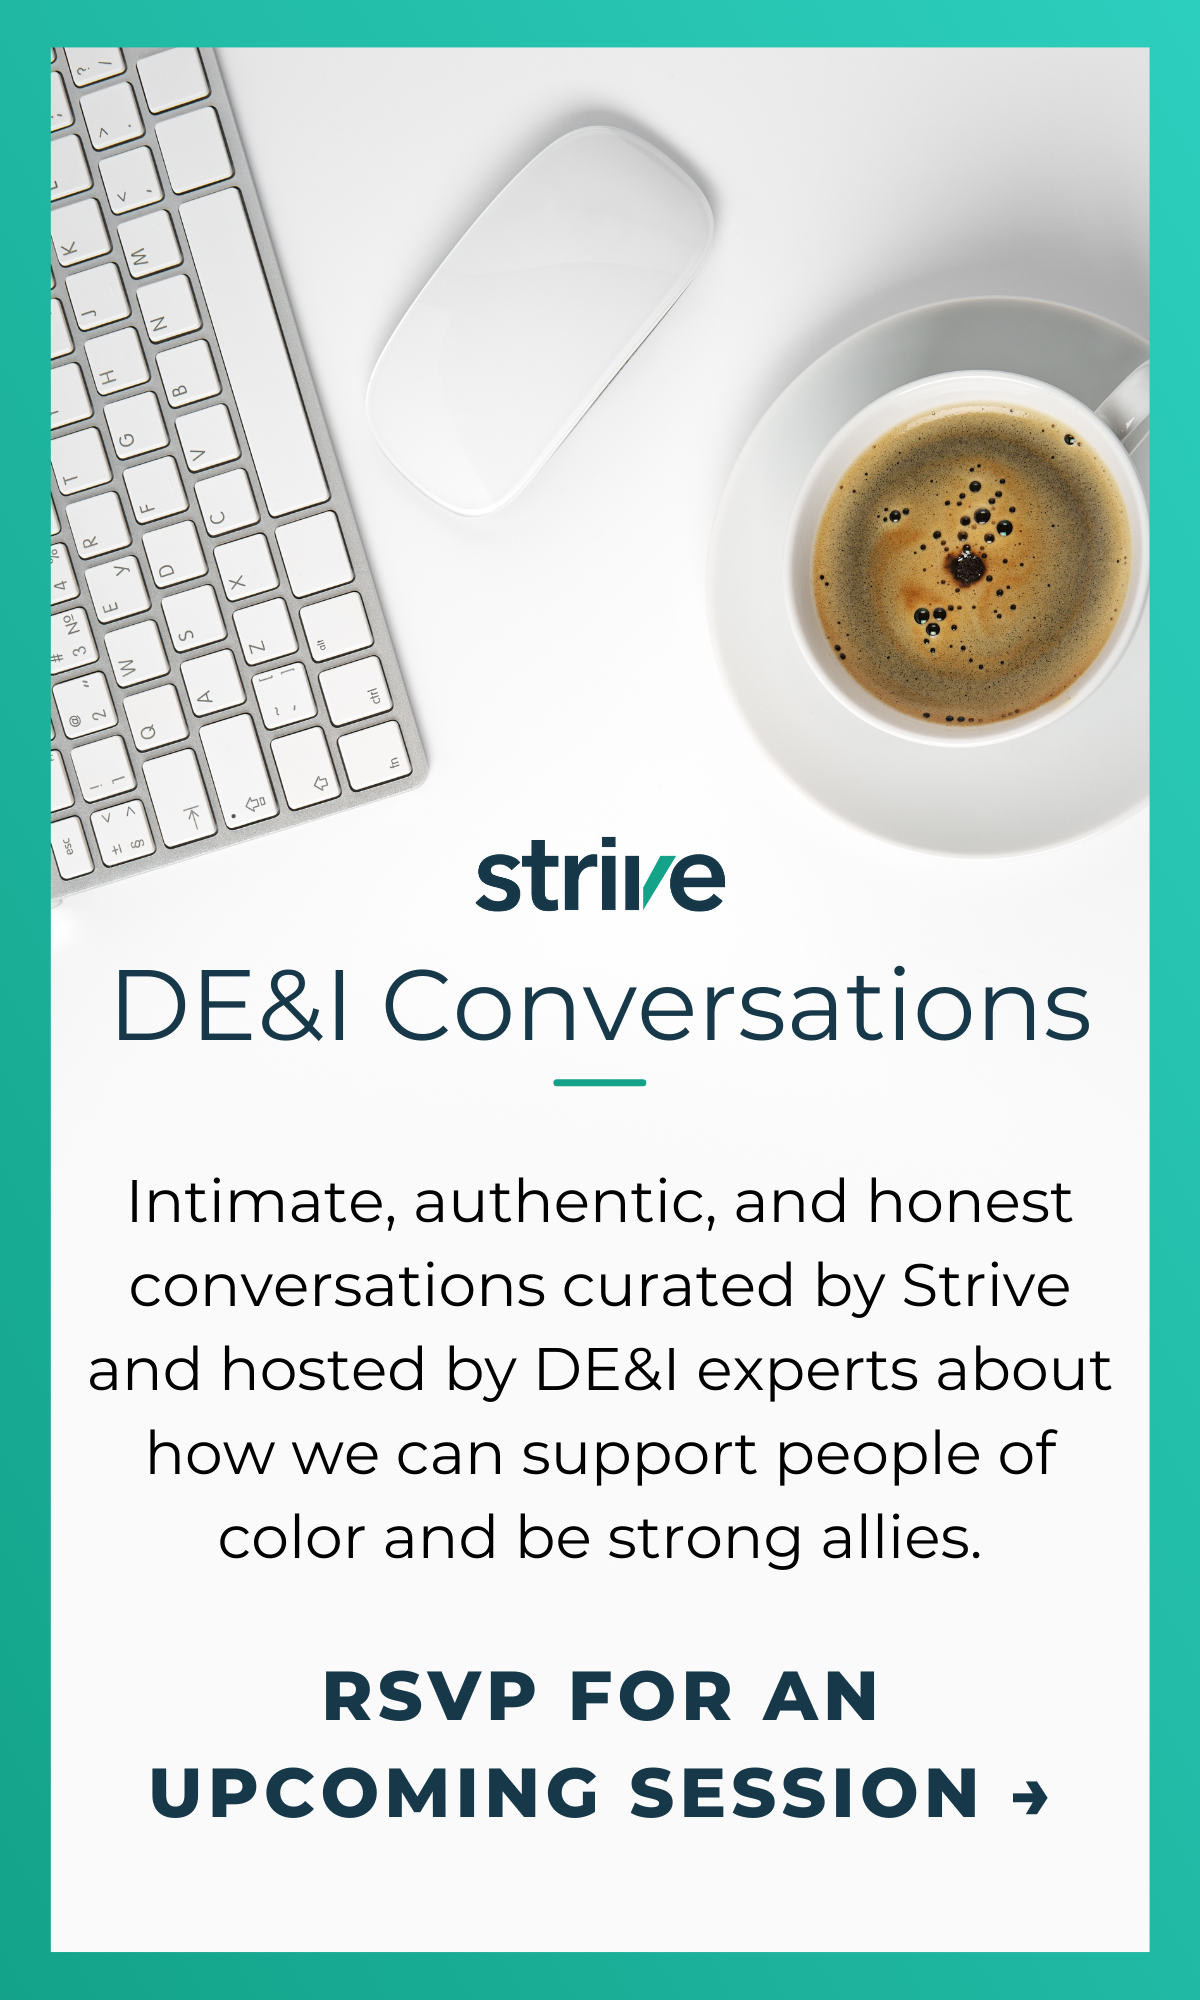 Strive DE&I Conversations, Intimate, authentic, and honest conversations curated by Strive and hosted by DE&I experts about how we can support people of color and be strong allies, RSVP for an upcoming session